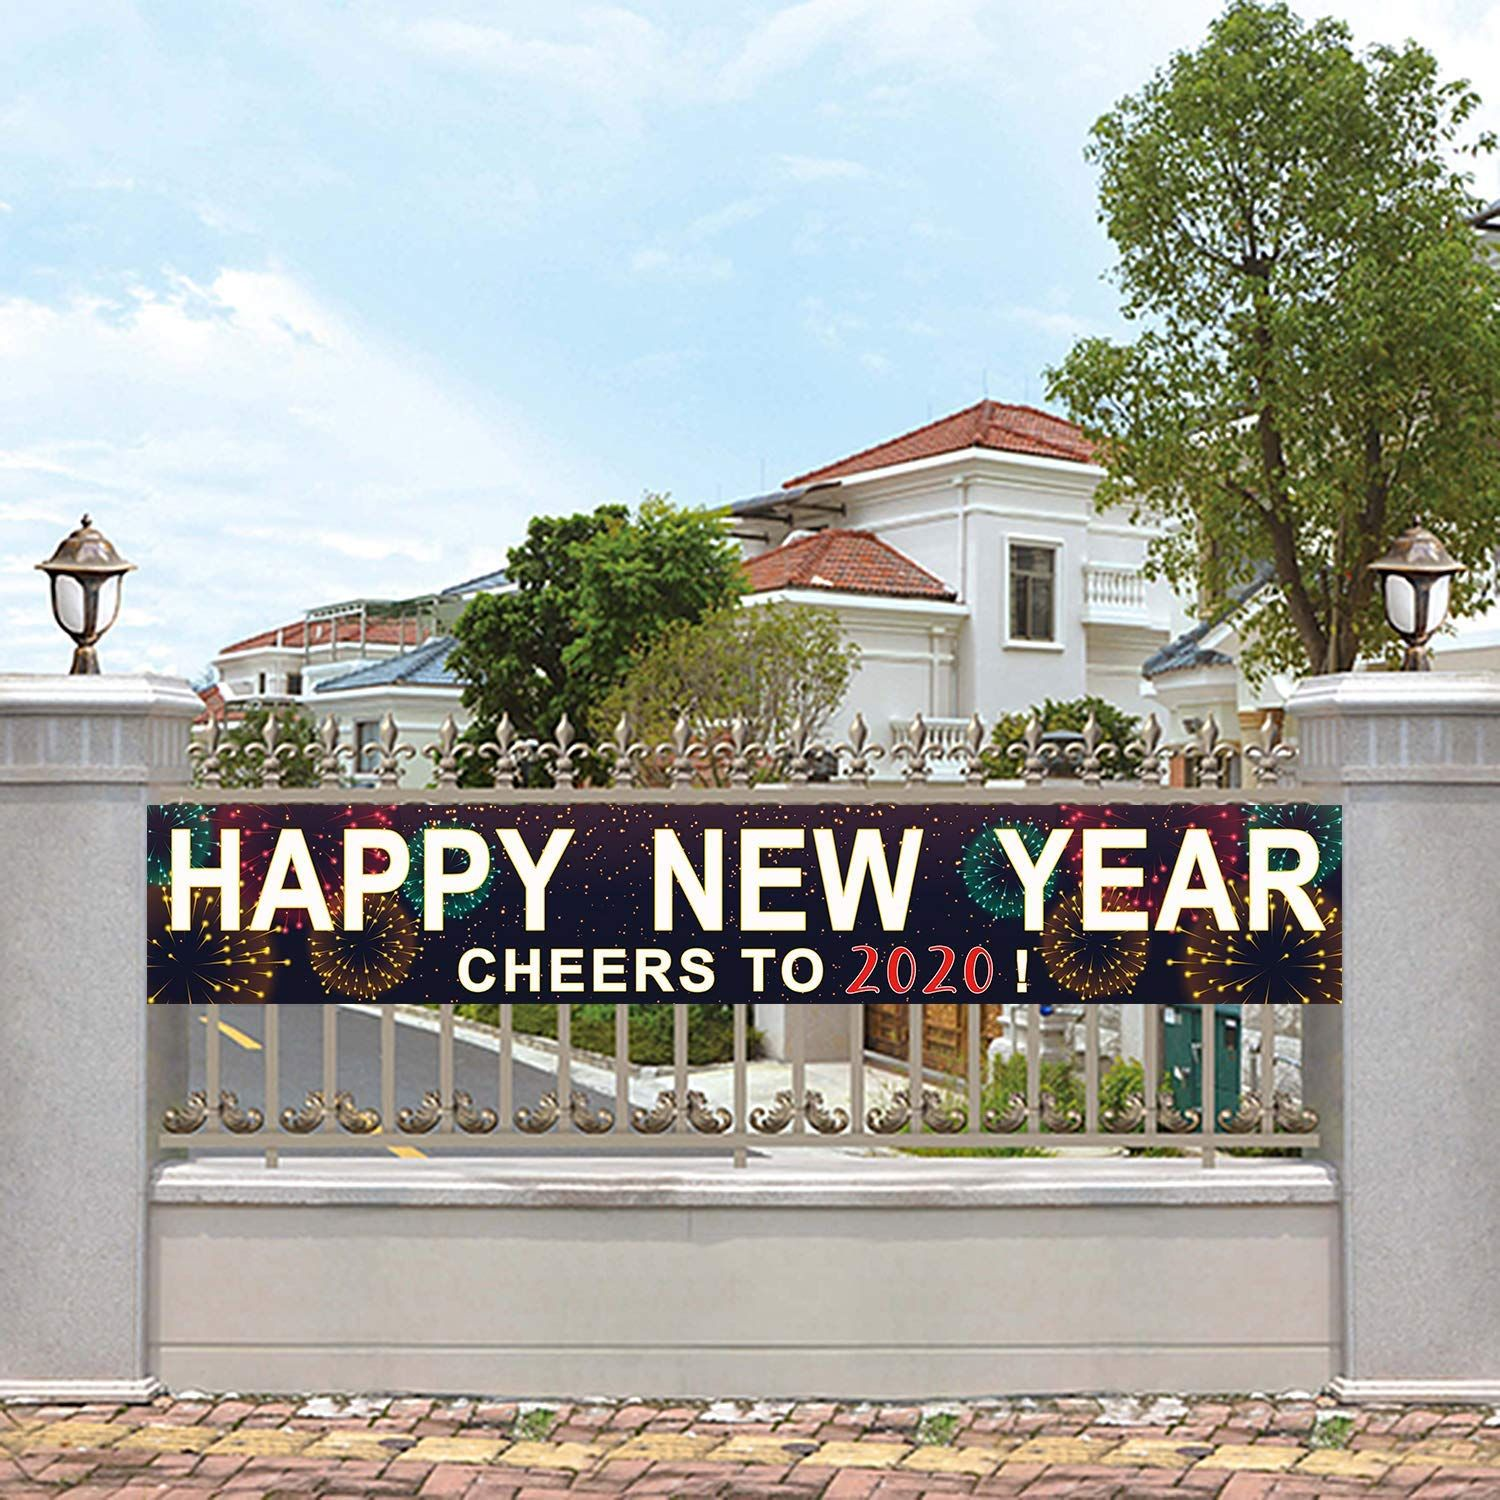 Happy New Year 2020 Quotes Images Greetings Wishes Happy New Year Images Happy New Year 2020 Merry Christmas And Happy New Year